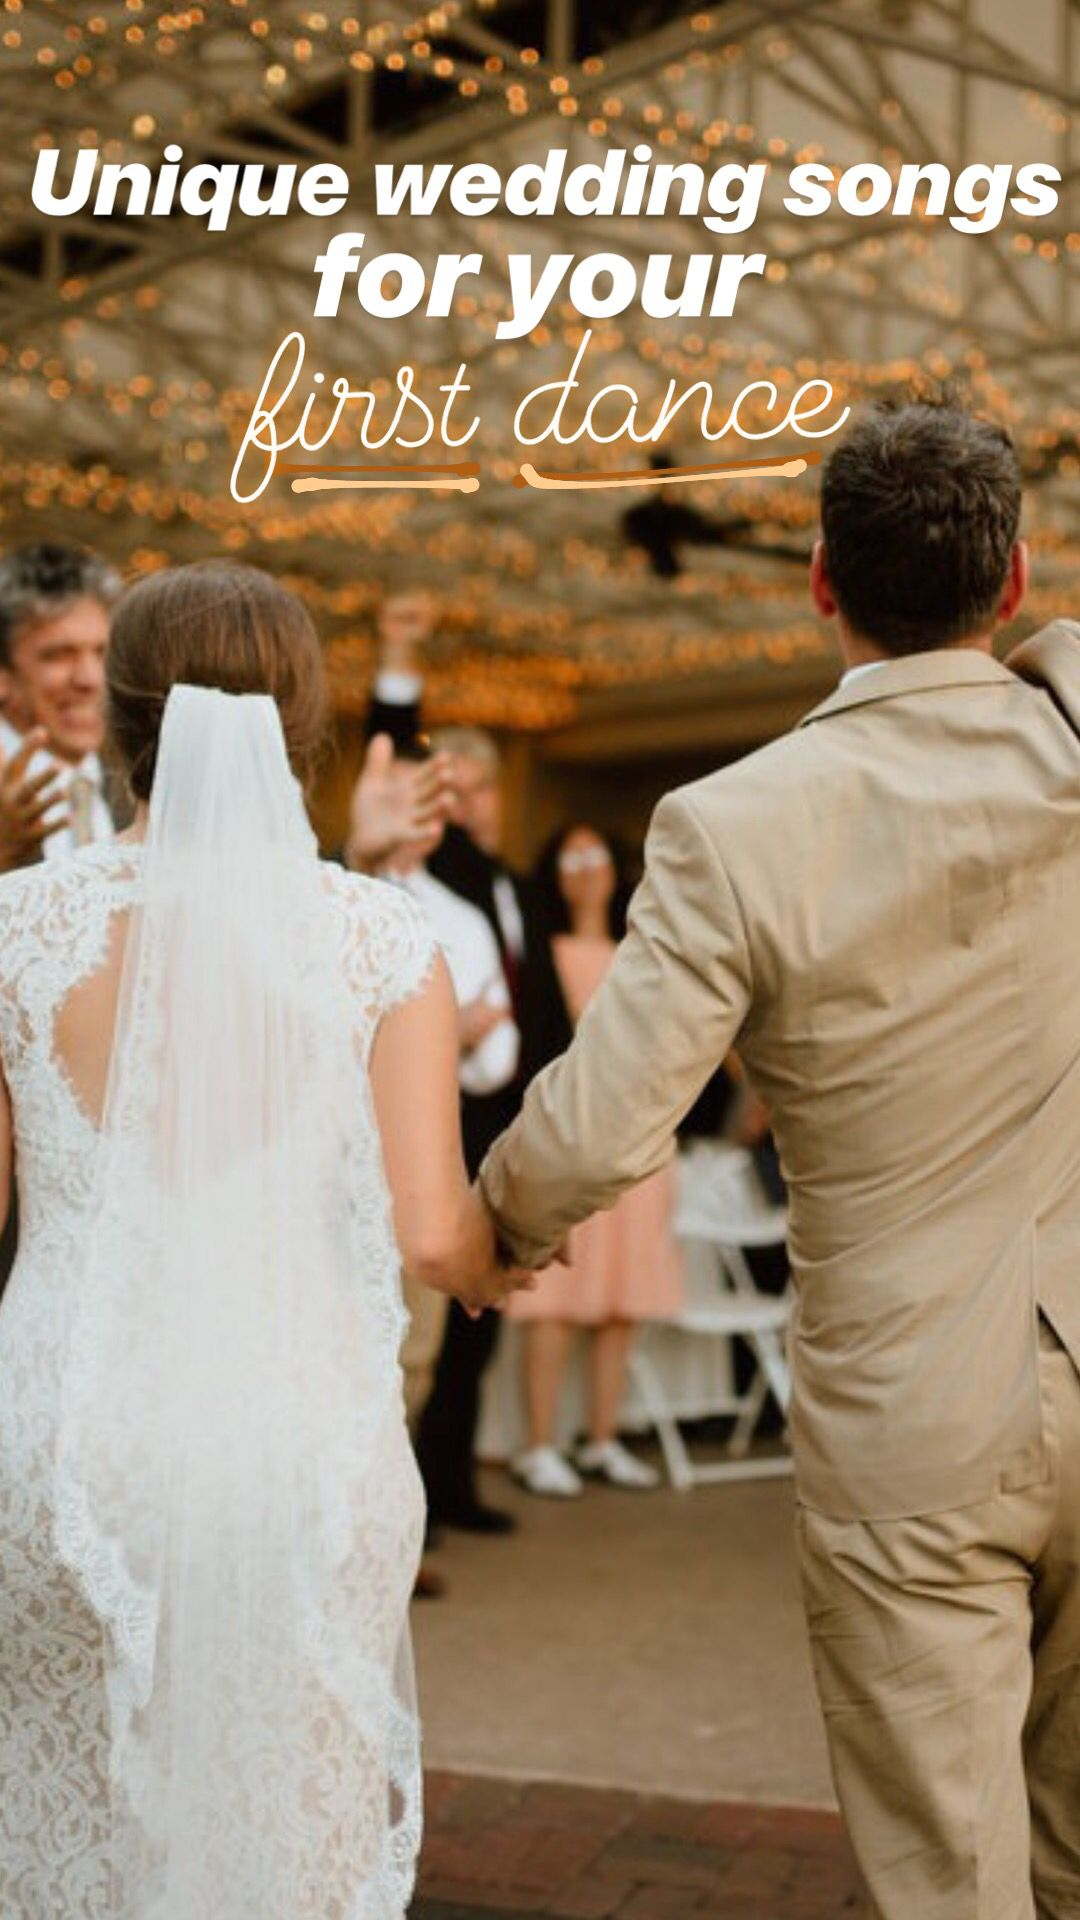 30 unique wedding songs for your first dance as newlyweds